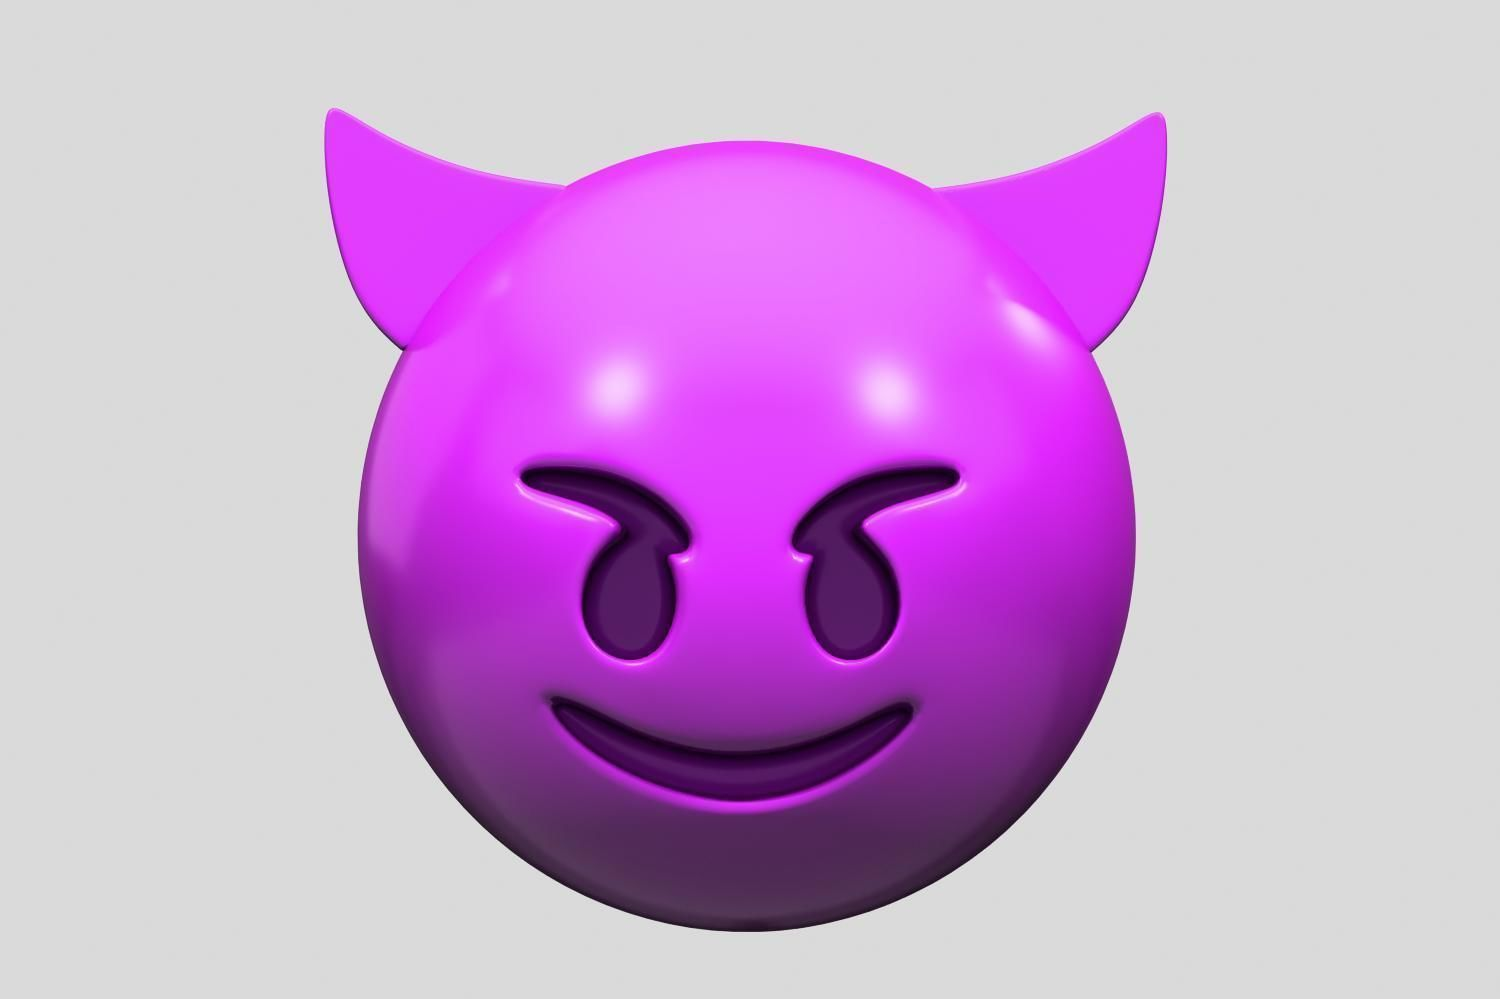 Emoji Smiling Face with Horns